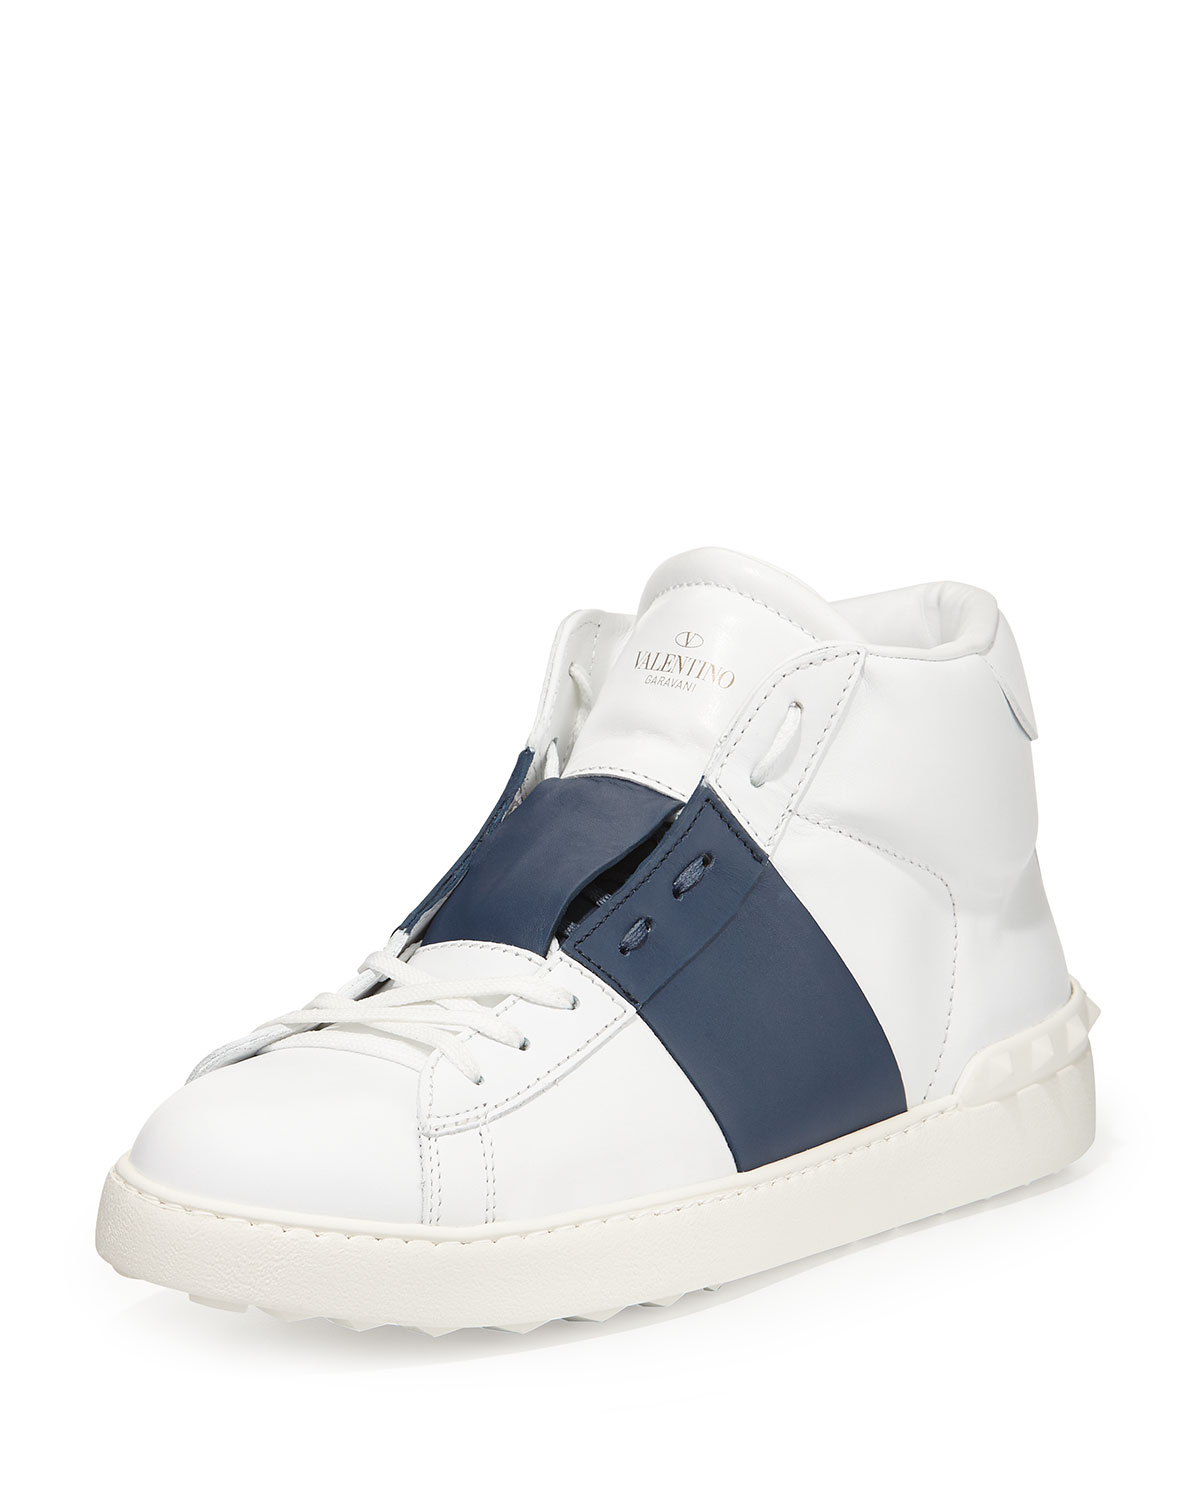 0611eec61dcb Lyst - Valentino Rockstud Leather High-top Sneaker in White for Men